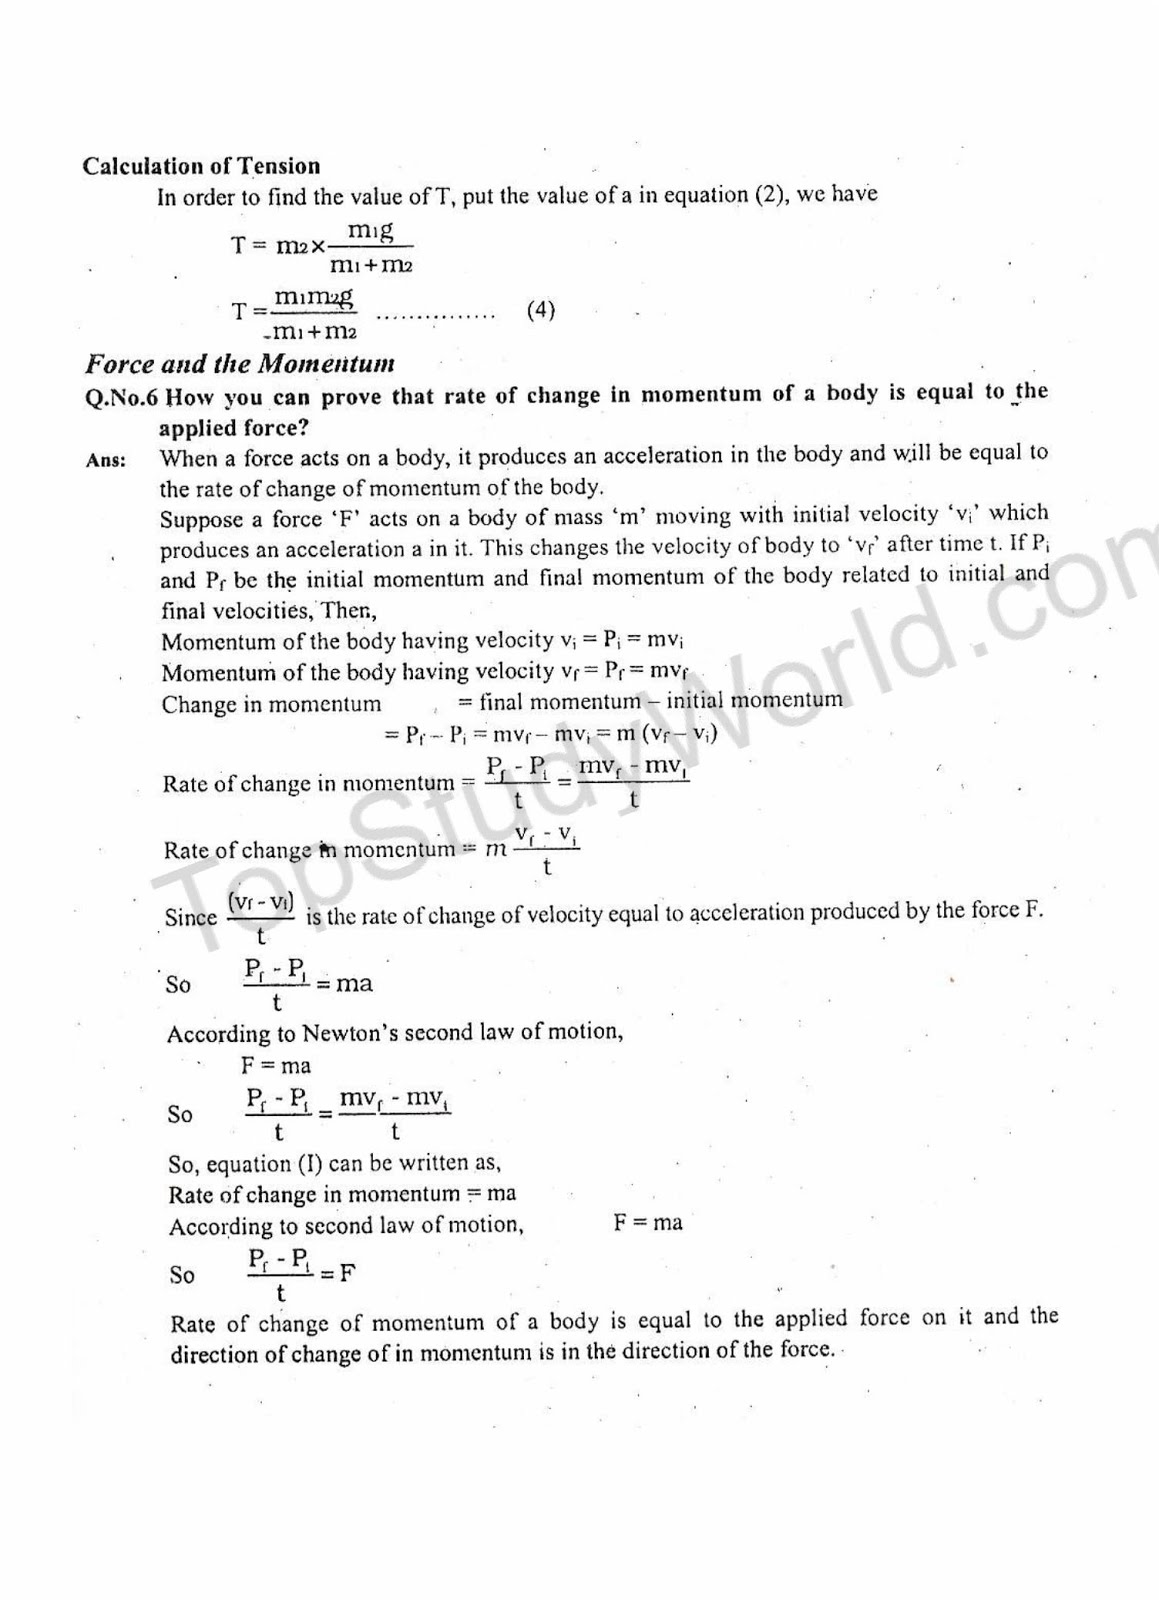 KIPS 9th Class Dynamics Physics 3rd Chapter Notes (With PDF